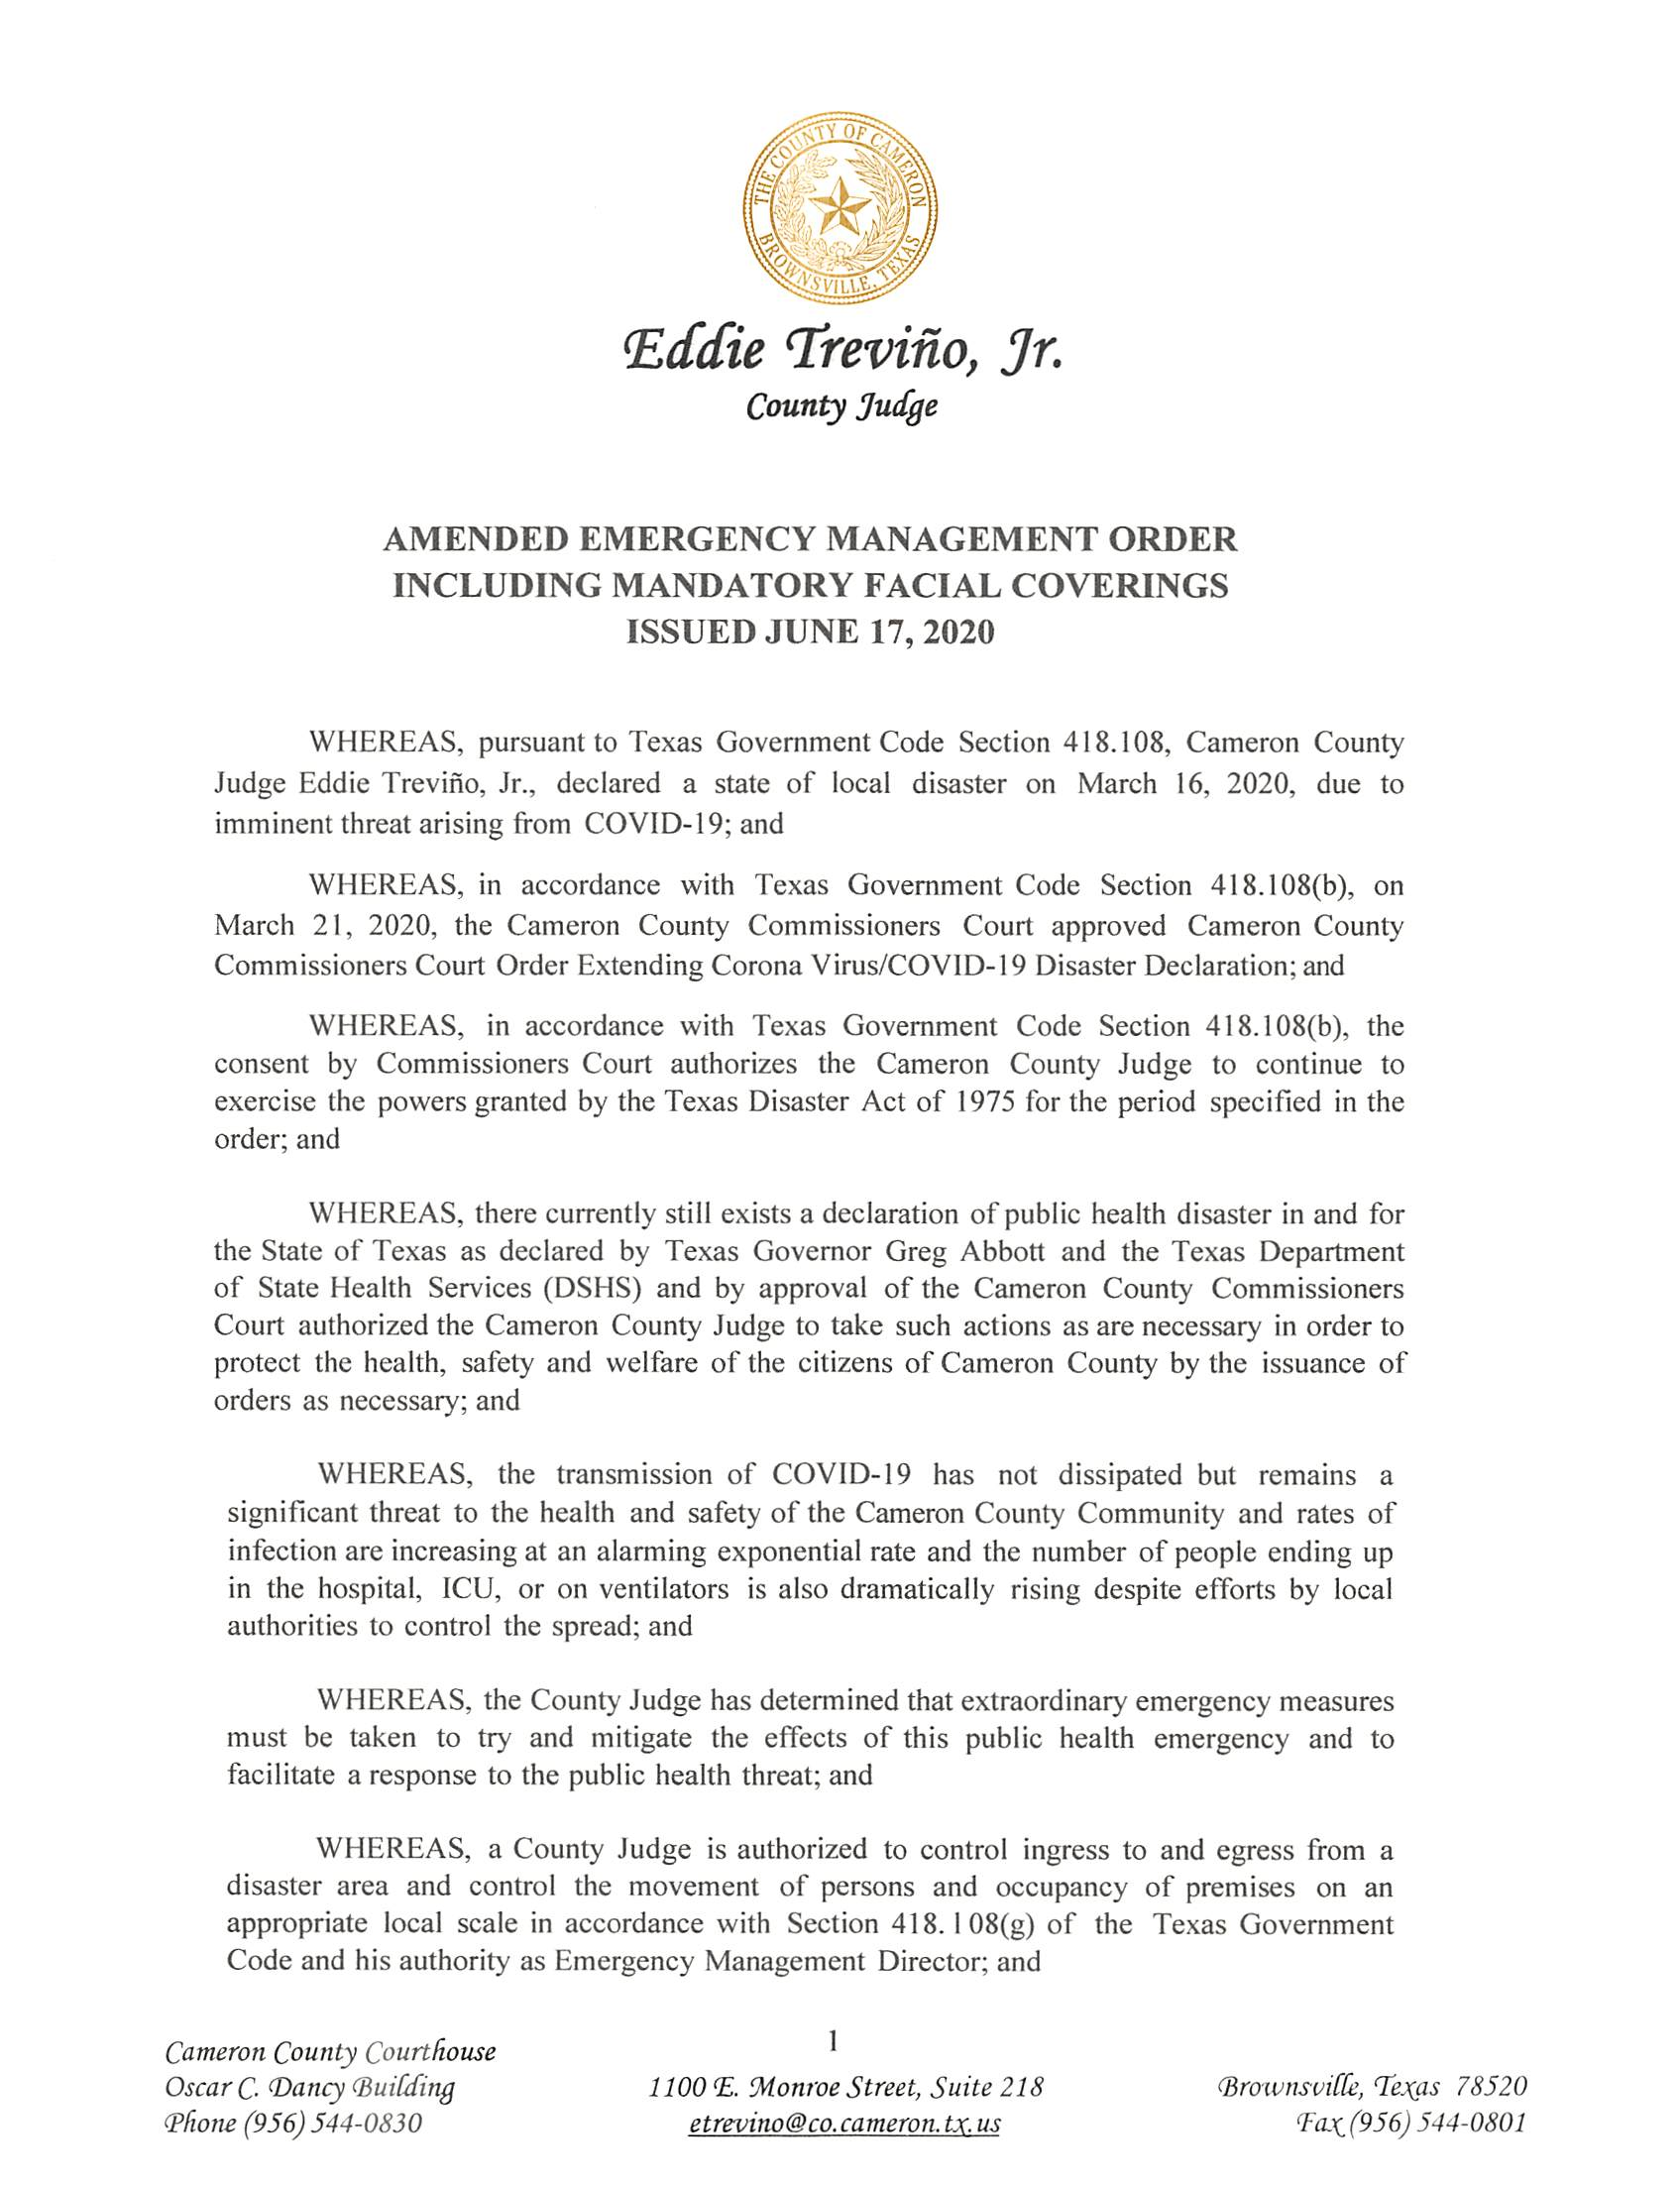 2020.06.17 Amended Emergency Management Order Including Mandatory Facial Coverings Page 1